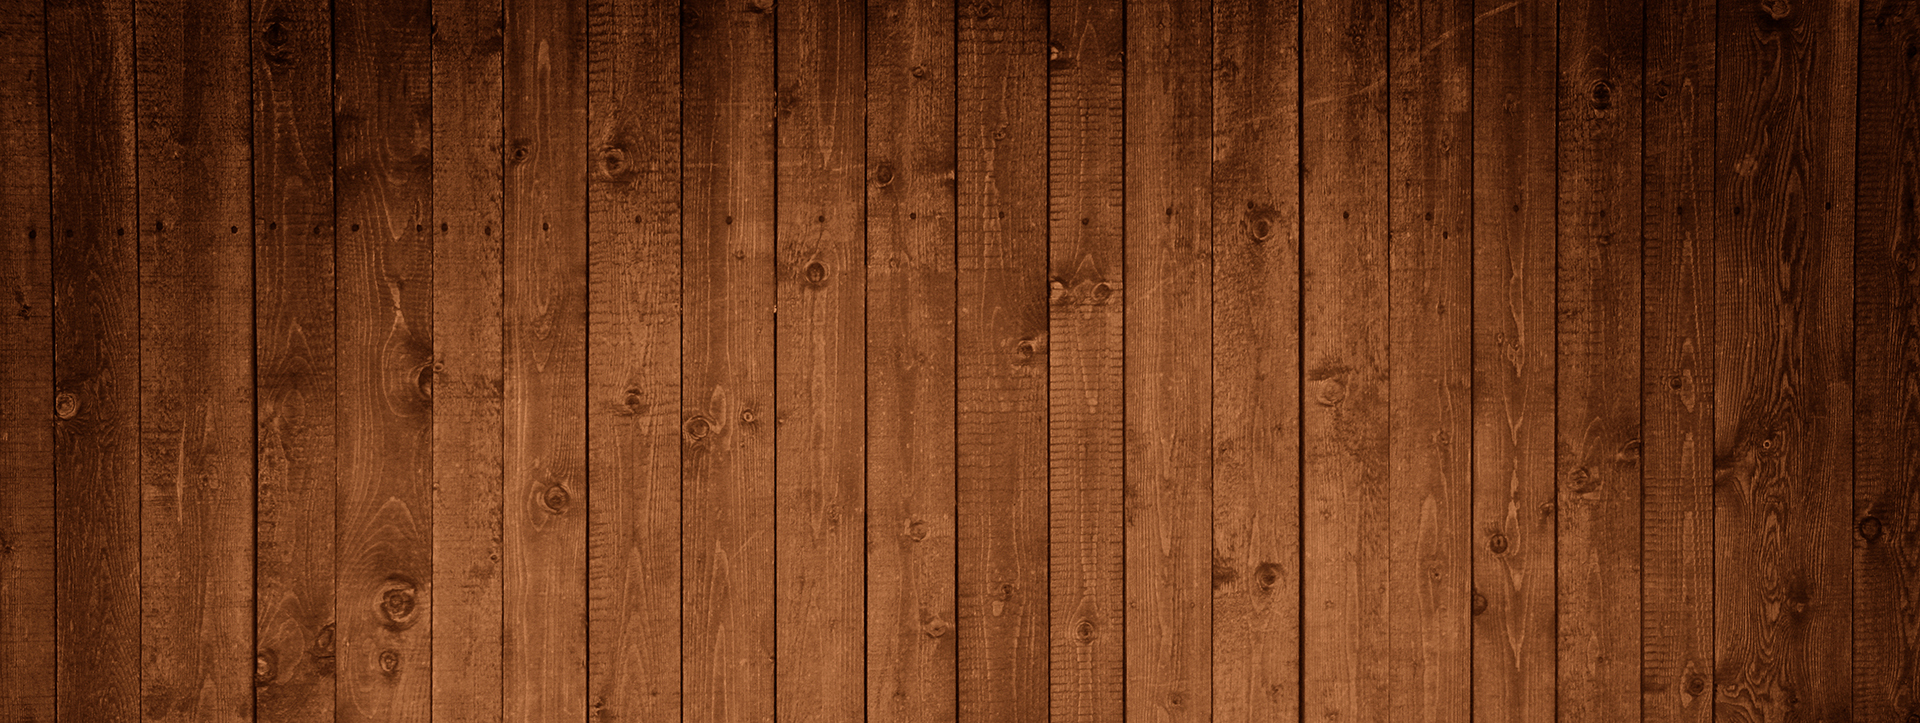 wood background banner creative  nick  shading  texture